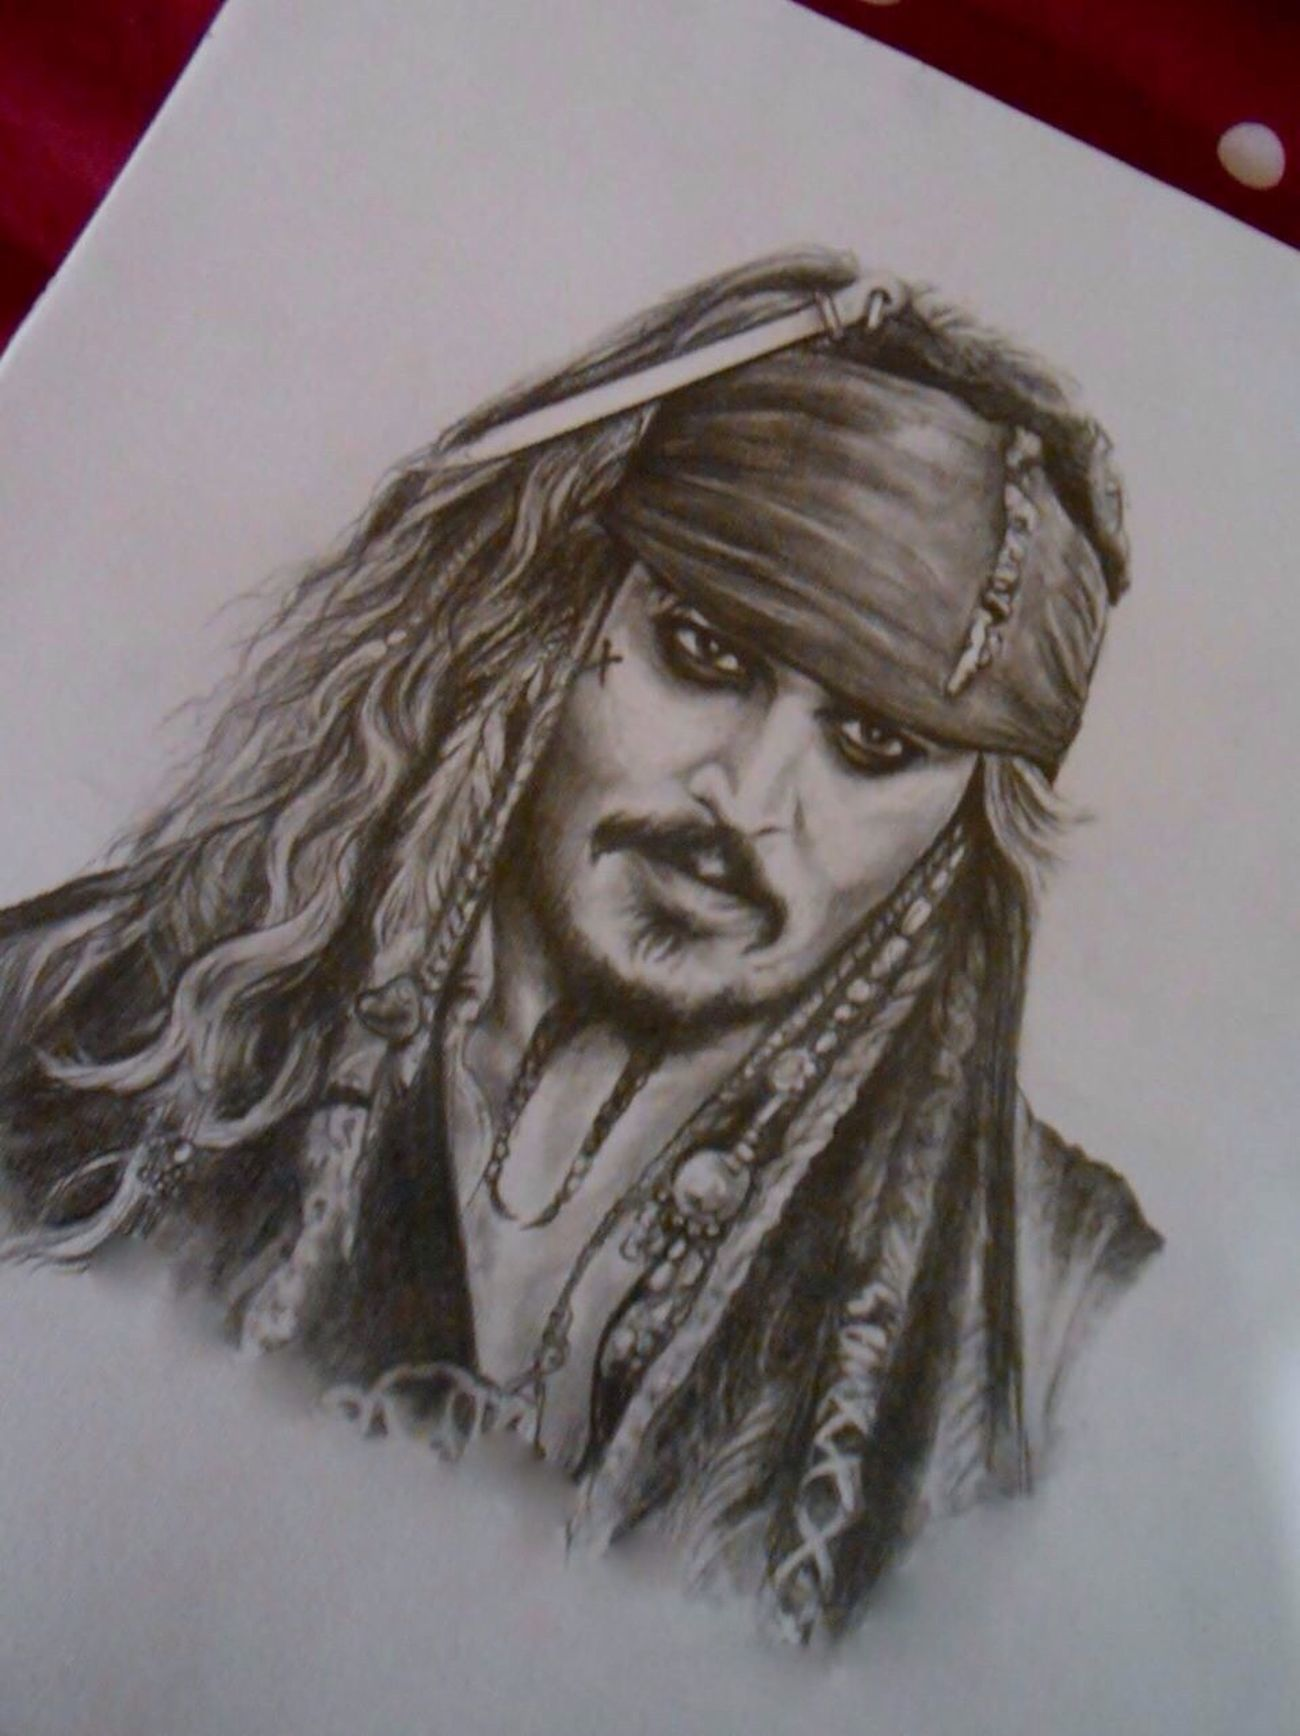 GraphitePencil My Art Work My Drawing Streamzoofamily Captain Jack Sparrow